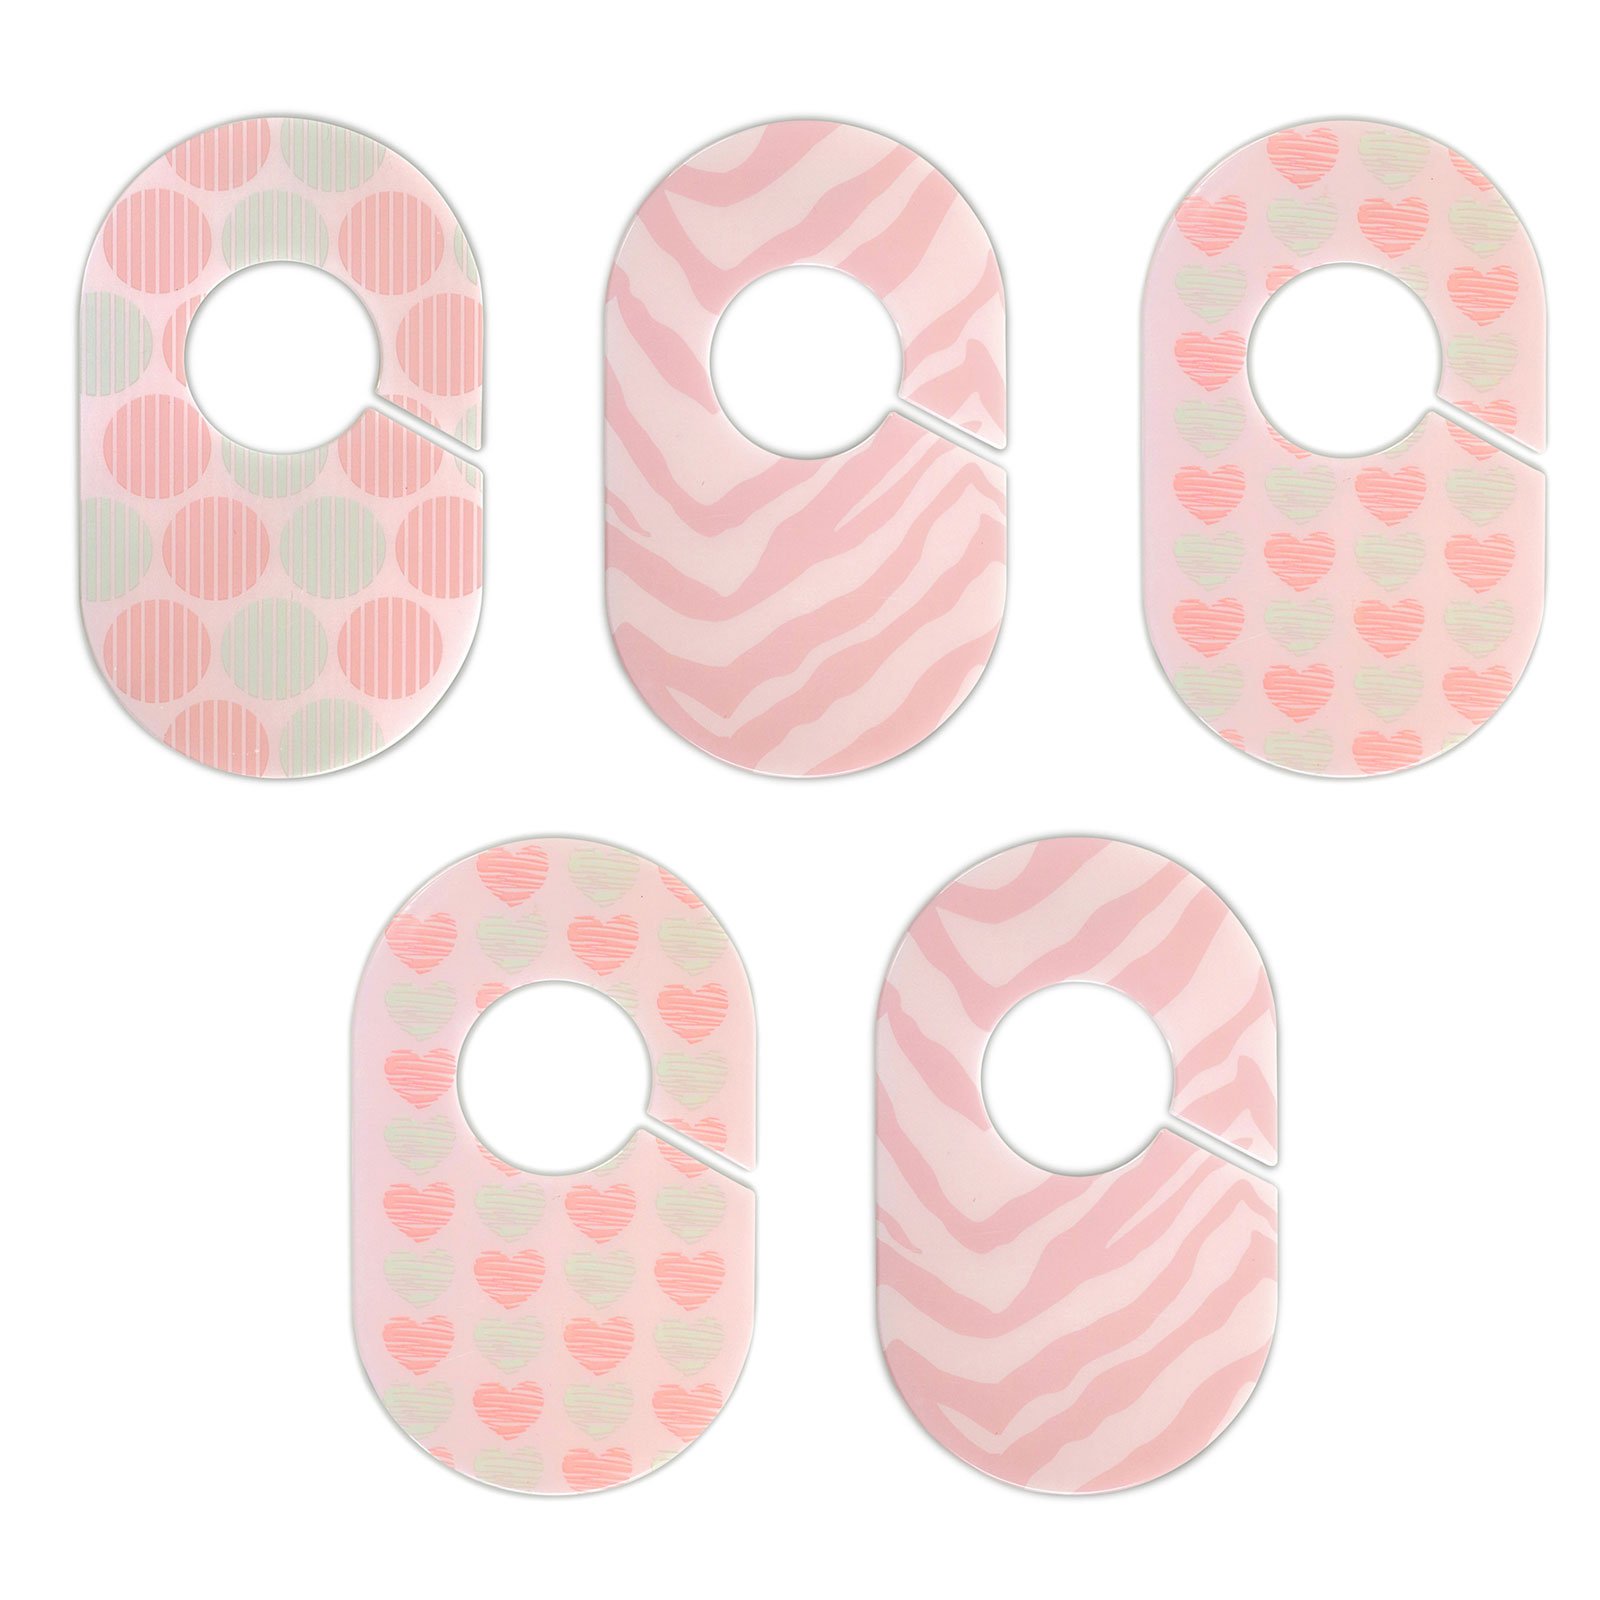 Little Haven Nursery Closet Organizers Dividers - Pink and Aqua Hearts and Animal Print - Set of 5 Plastic Baby Closet Rod Dividers